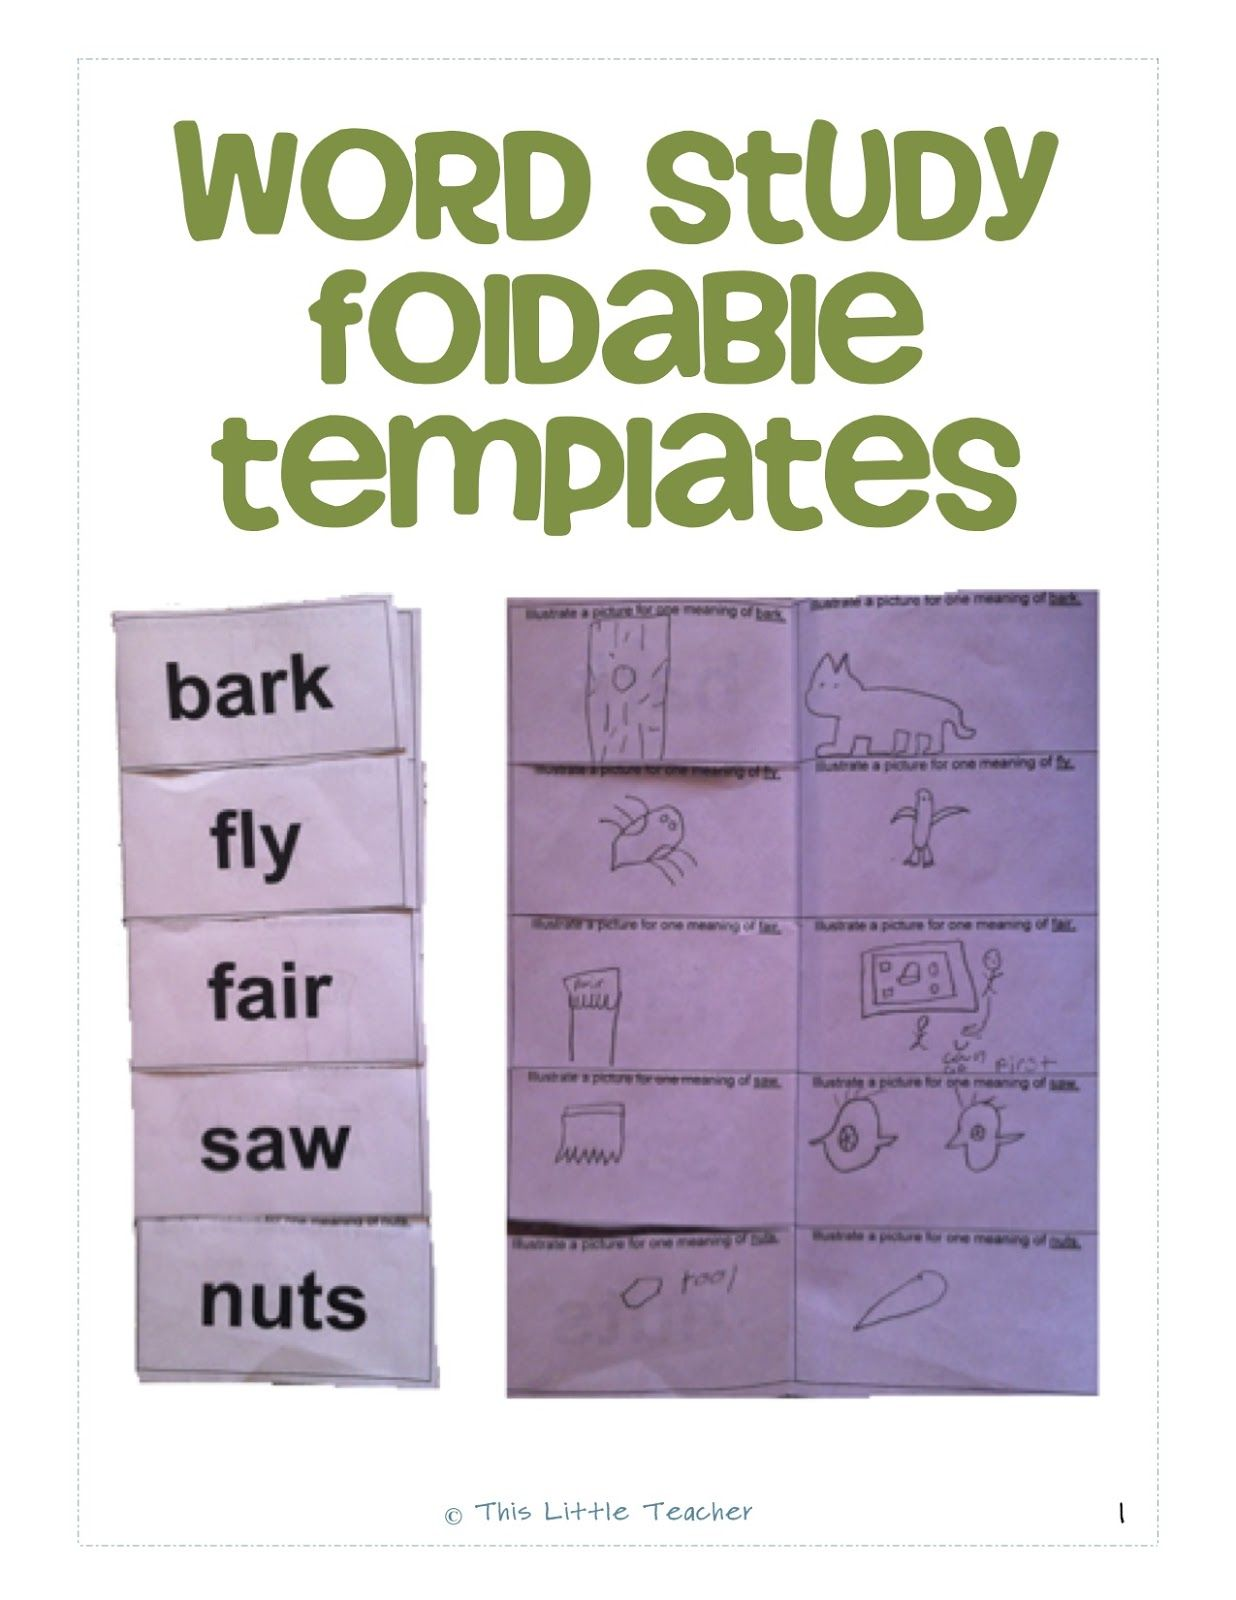 Word study foldable templates homophones homographs synonyms word study foldable templates homophones homographs synonyms antonyms prefixes suffixes biocorpaavc